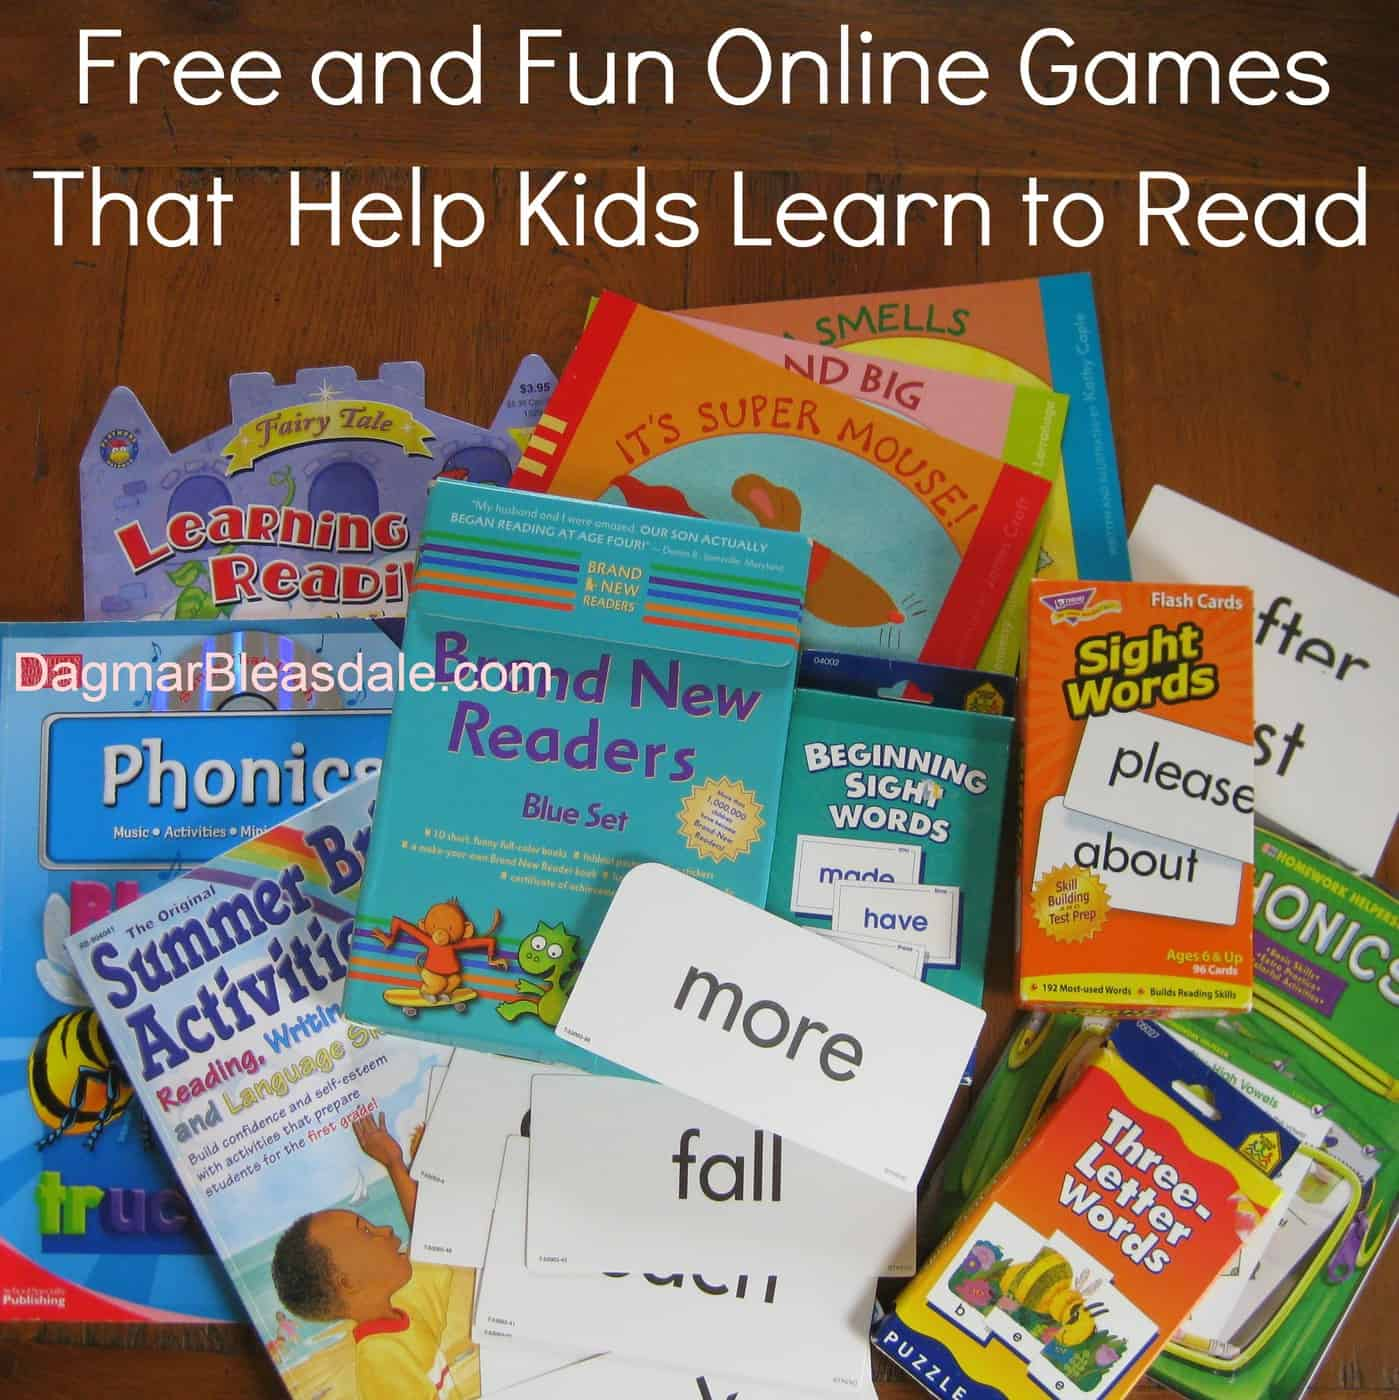 Free and Fun Online Games That Teach Kids to Read